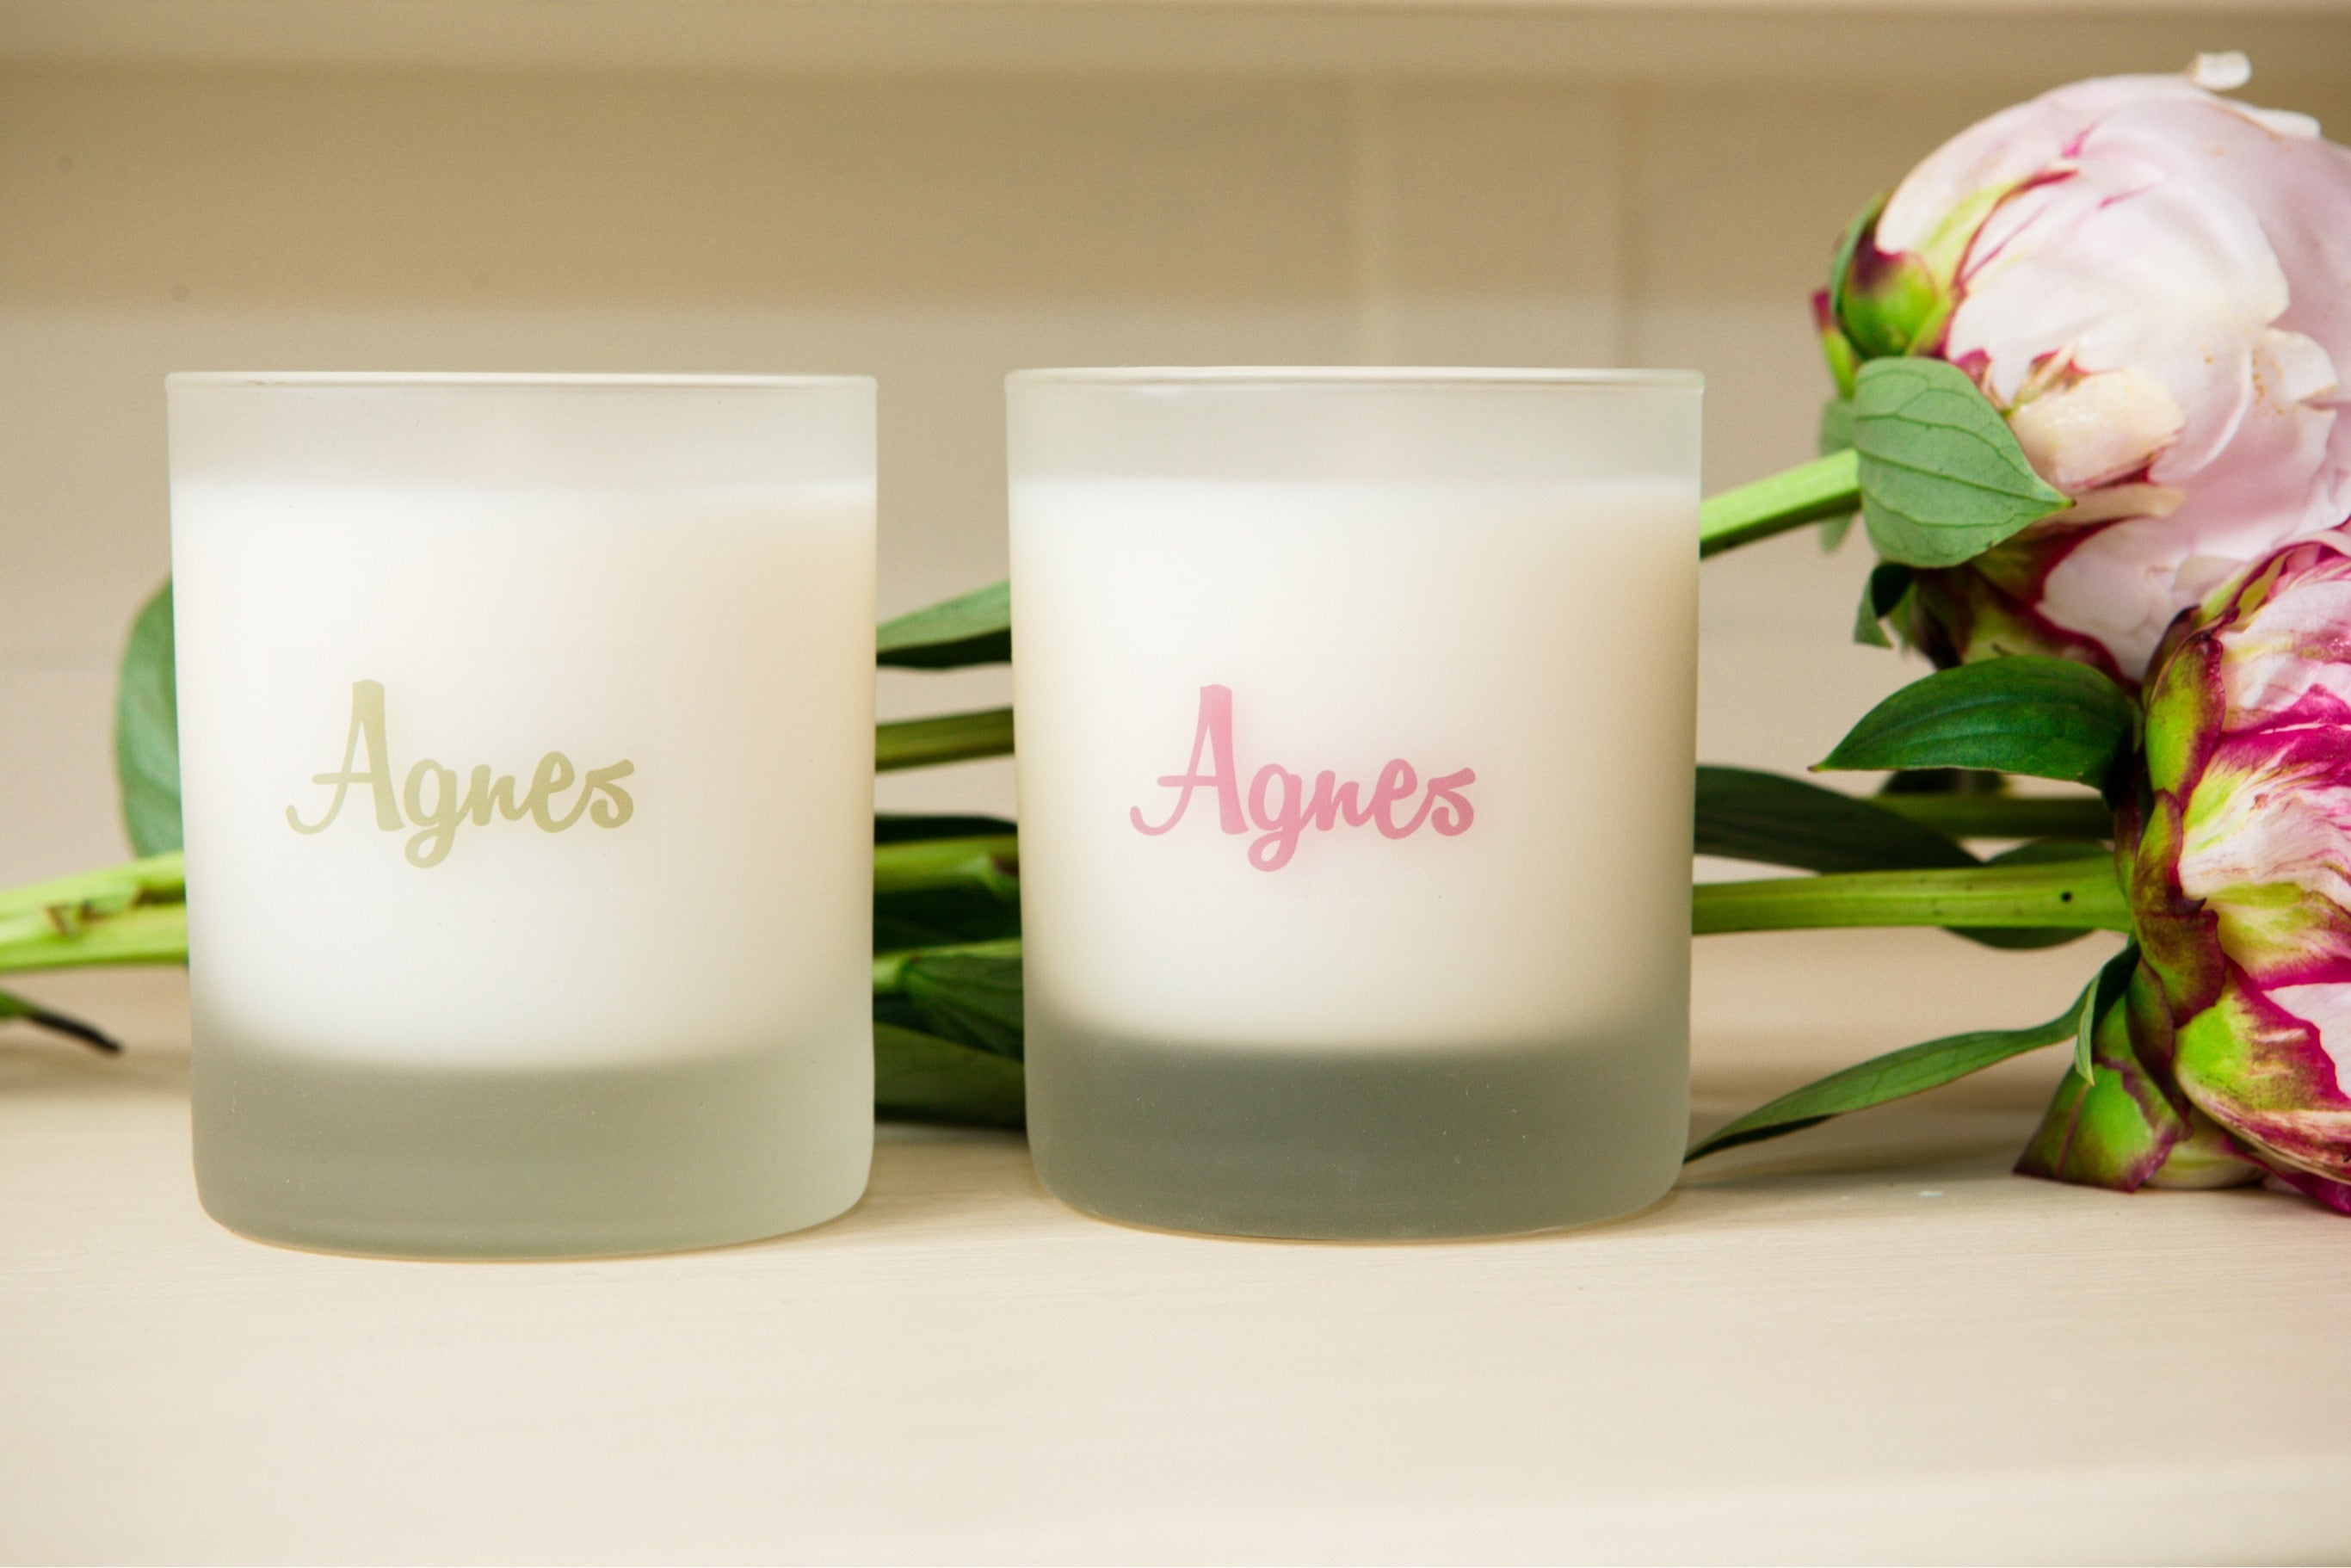 Lavender and Violet essential oil Agnes candle